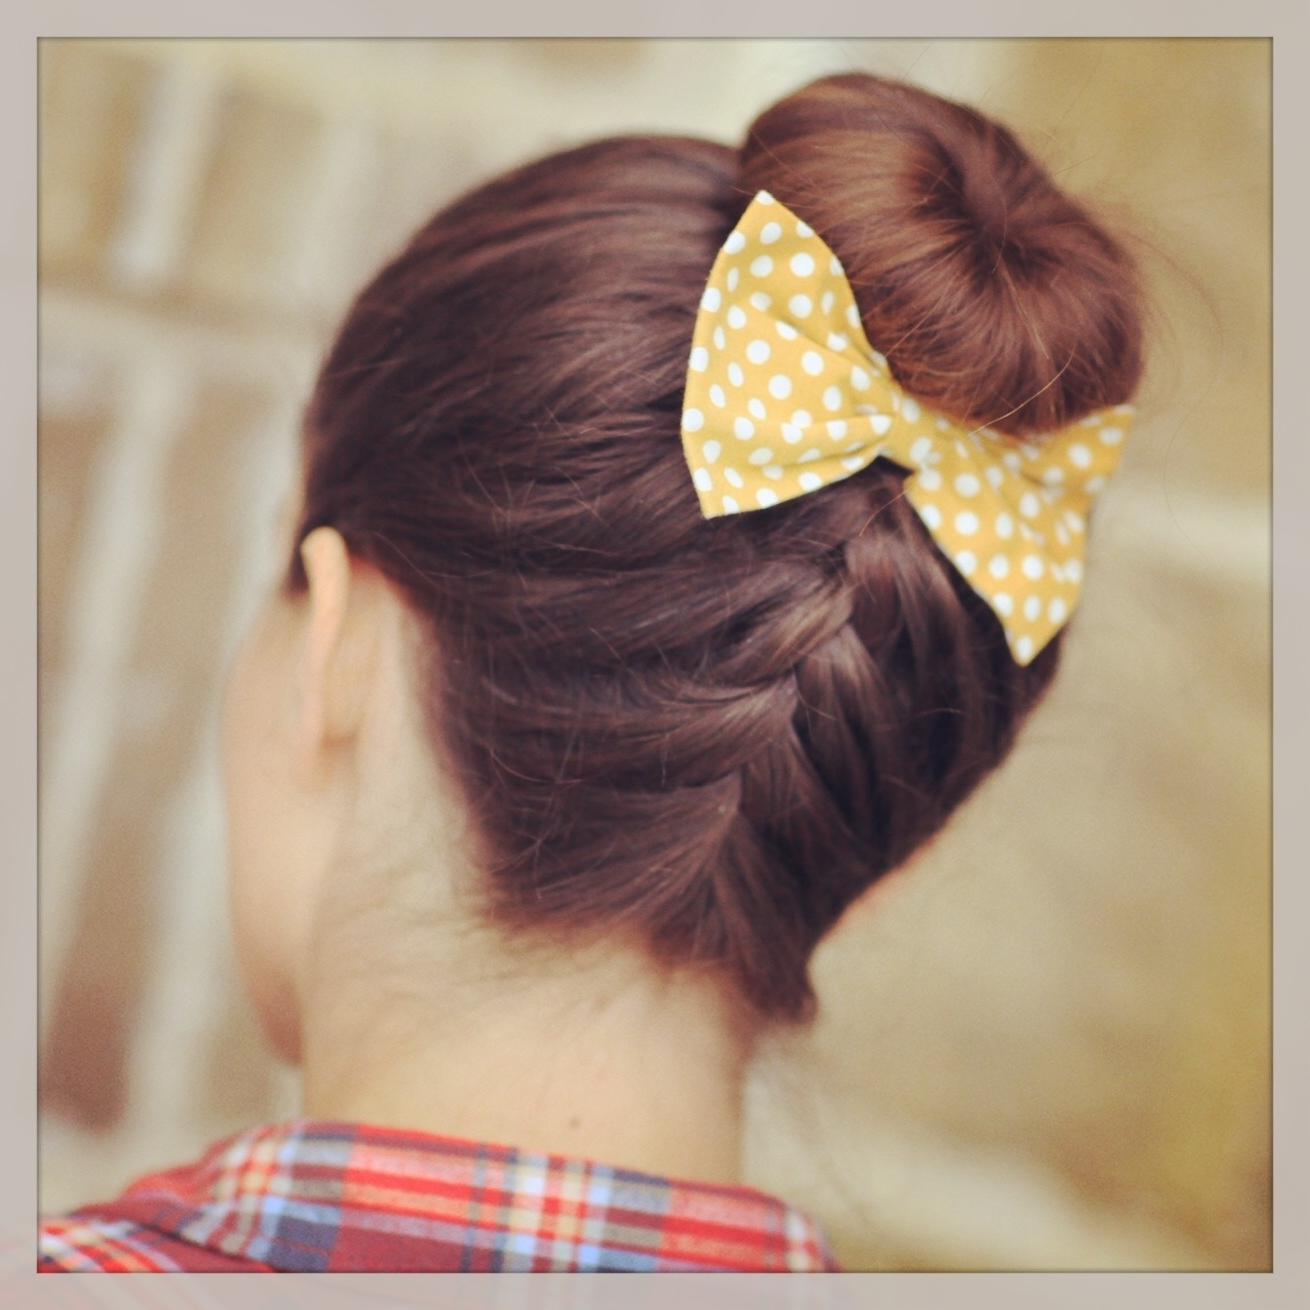 French Up High Bun | Updo Hairstyle Ideas | Cute Girls Hairstyles Pertaining To Braided Bun Updo Hairstyles (View 4 of 15)